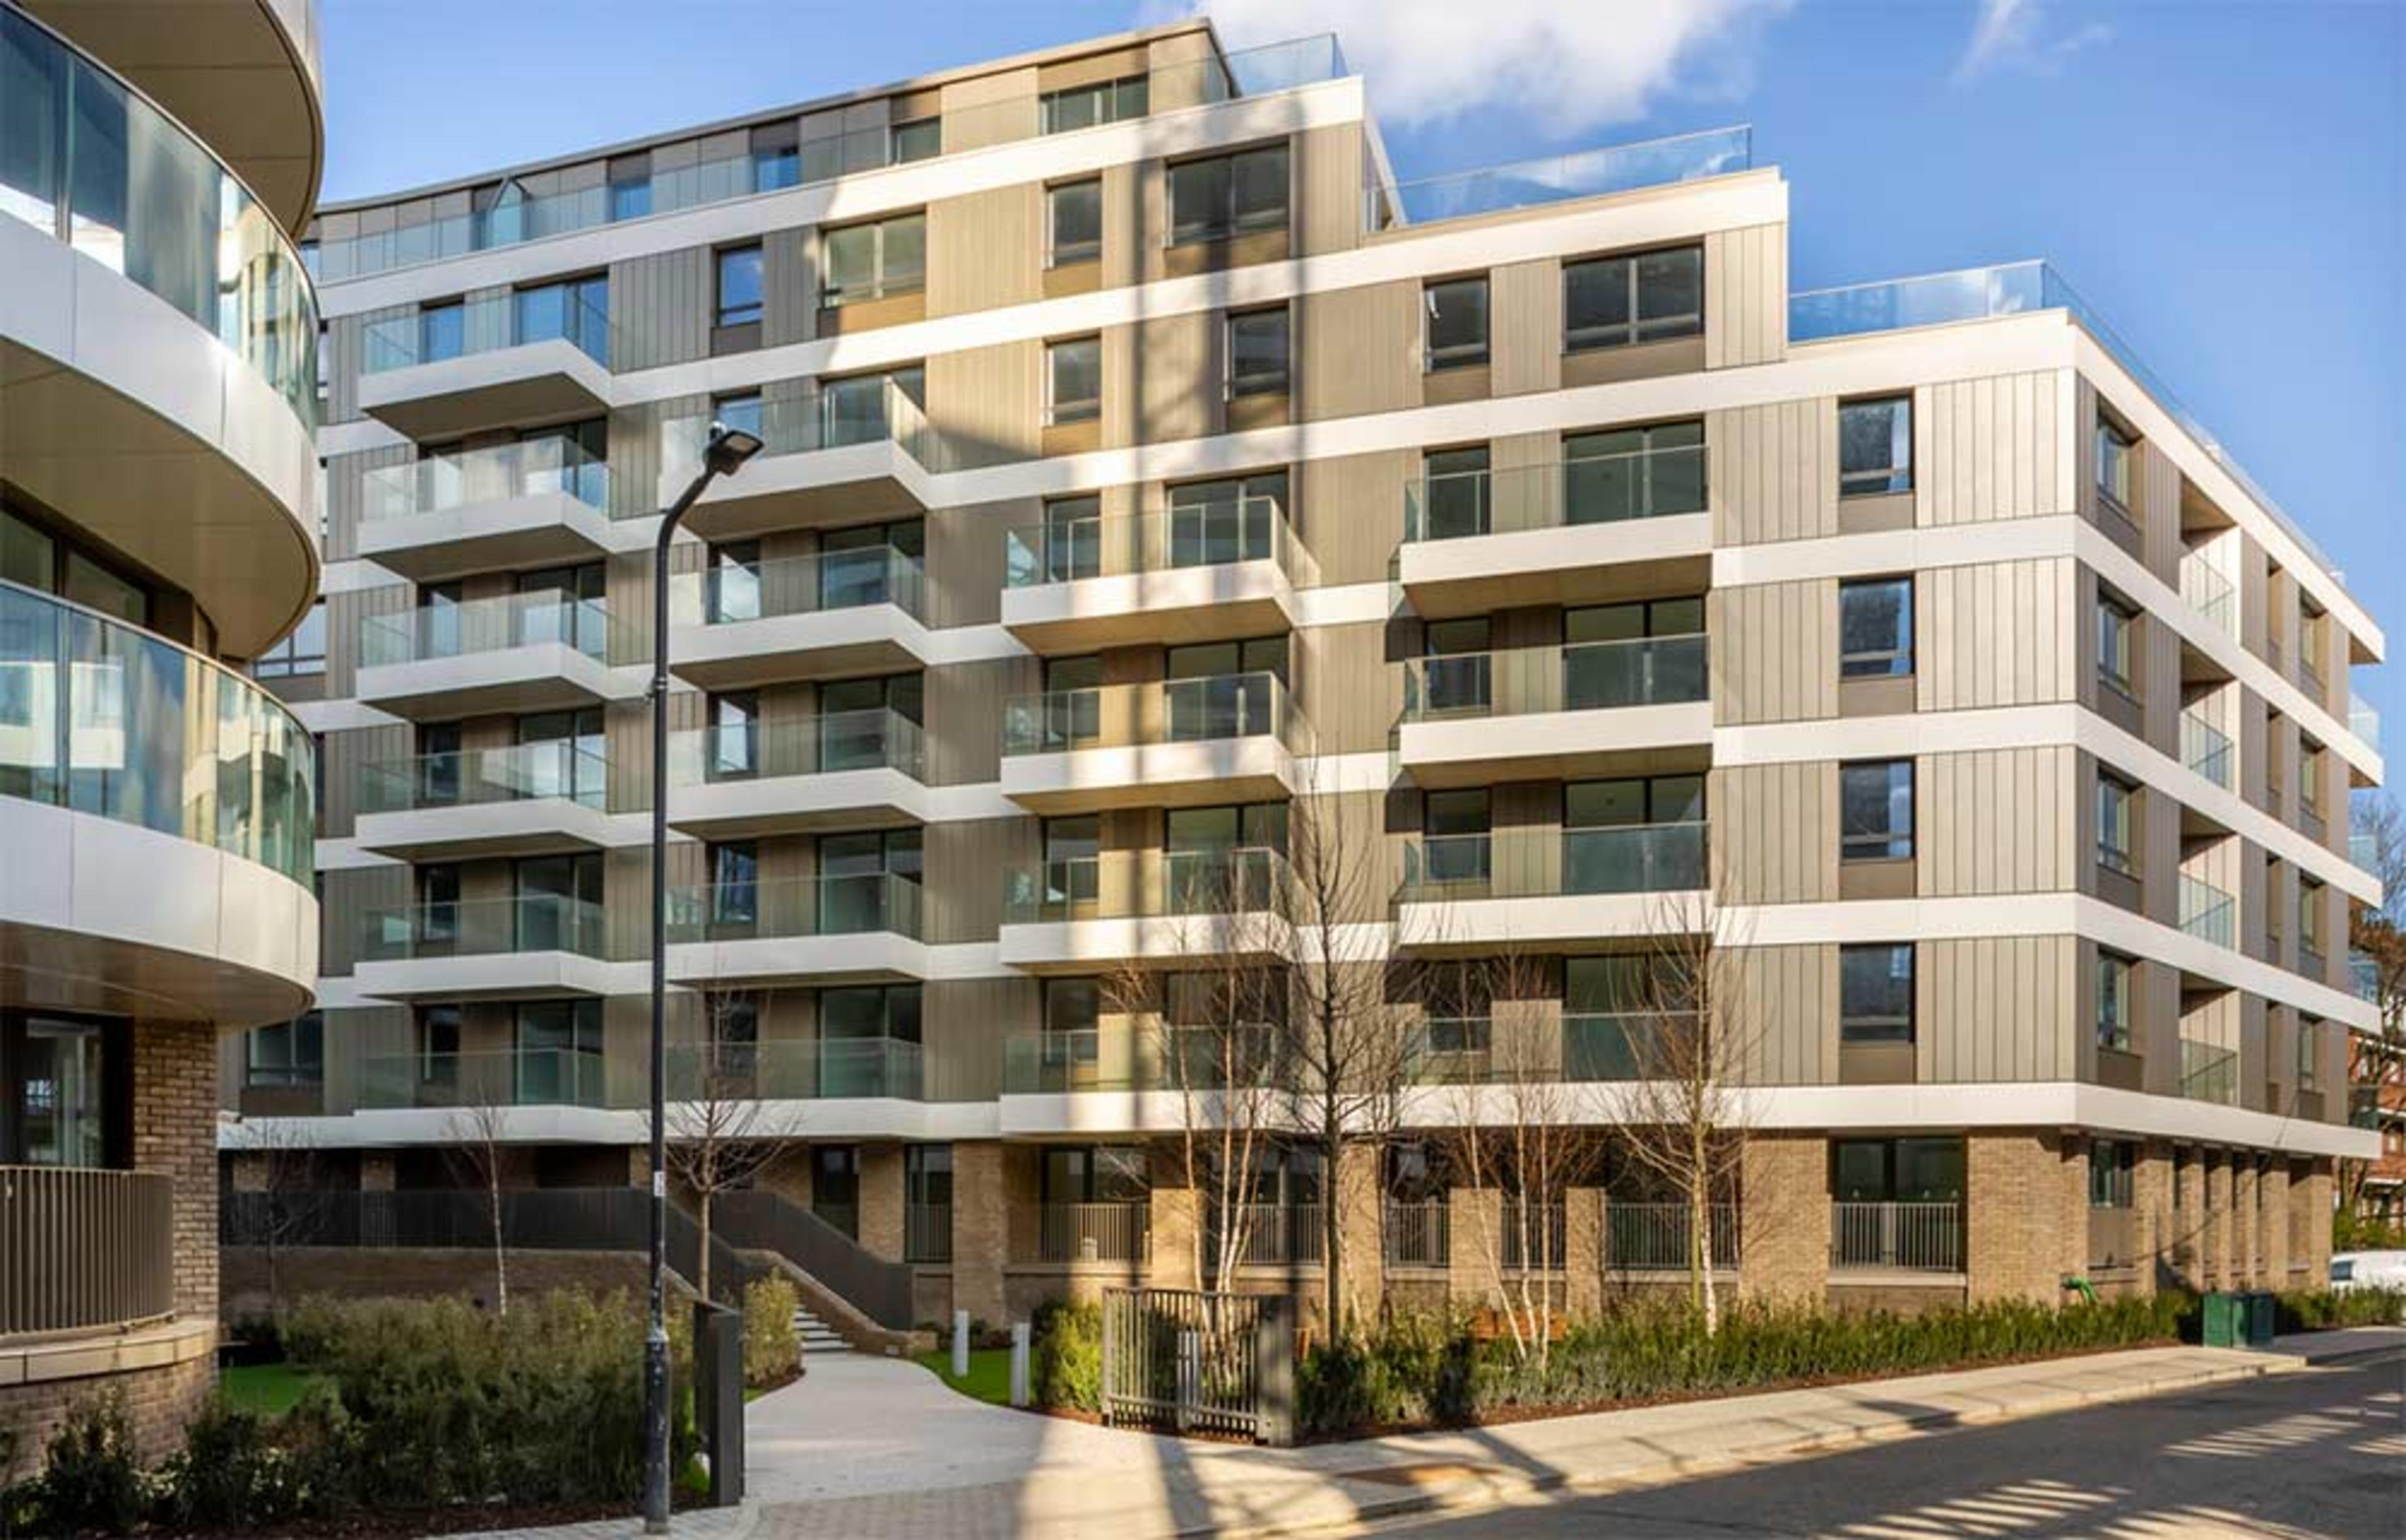 1, 2 and 3 bedroom shared ownership apartments at Anthology Wembley Parade - view from street